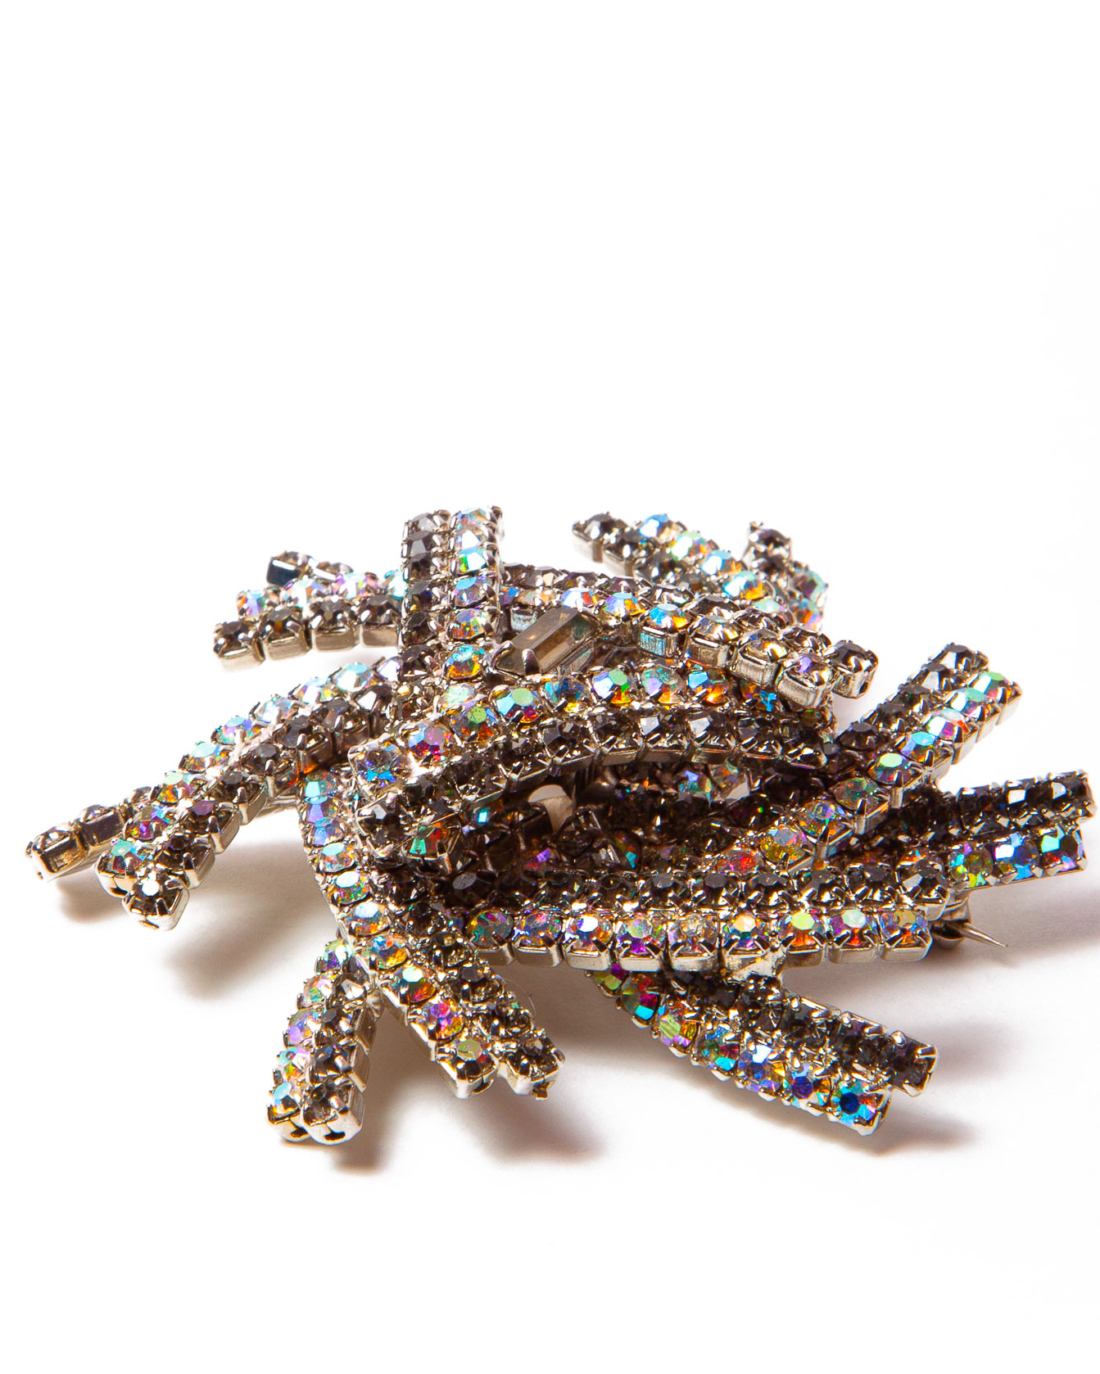 Black Diamond Swarovski and AB Crystal 3D Star Brooch, circa 1960's